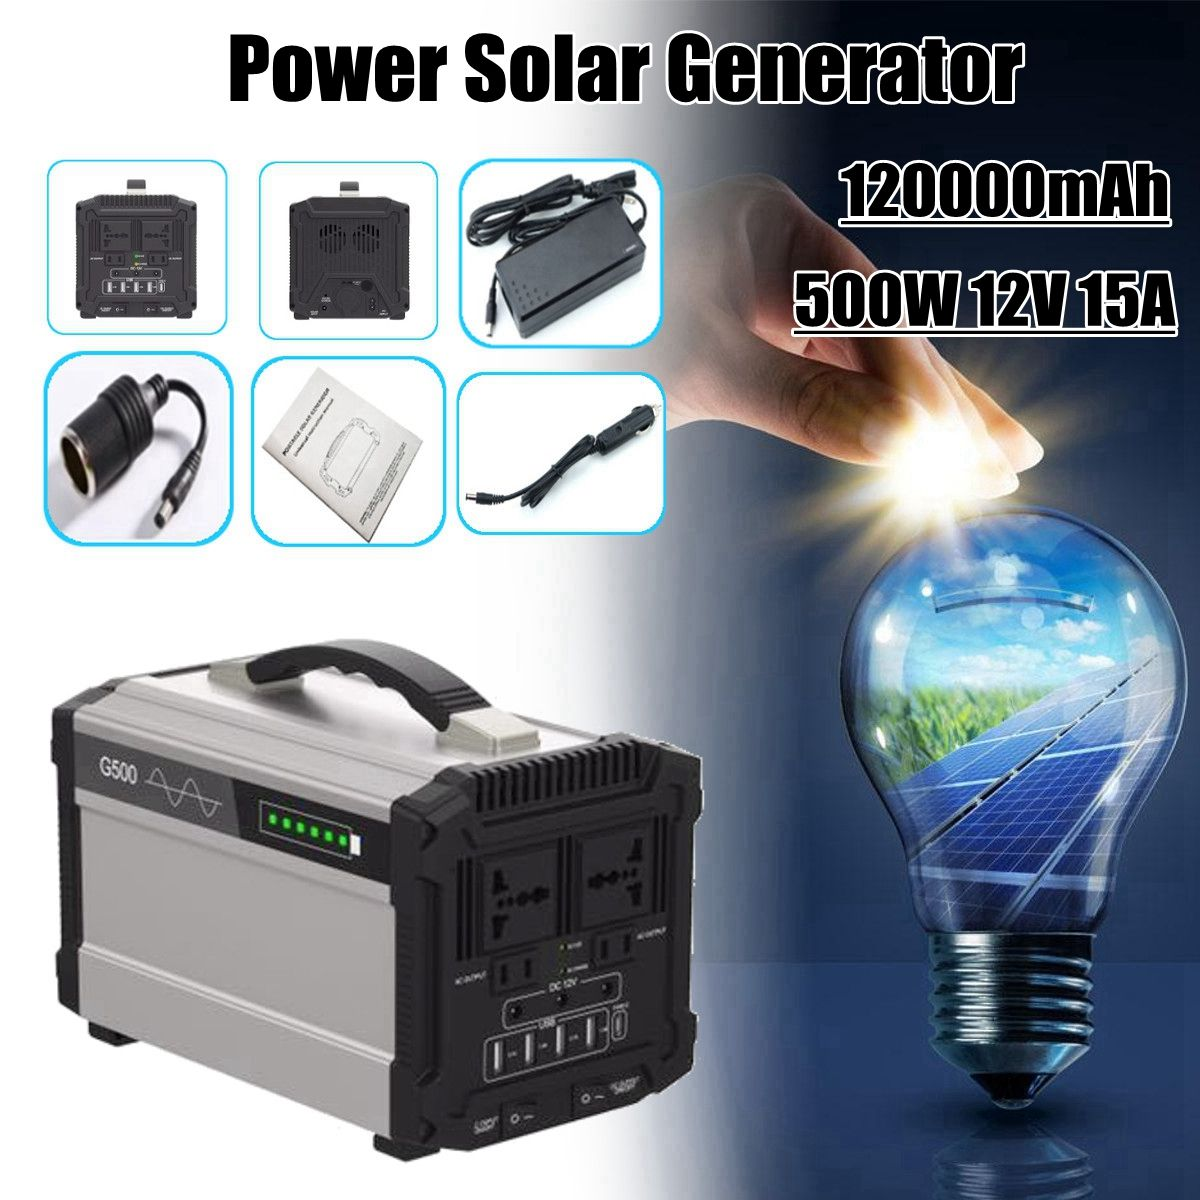 444Wh 120000 mah 500 watt 12 v 15A Inverter Energie Power Lagerung Hause Outdoor Tragbare Strom Solar Generator Schneller Ladung